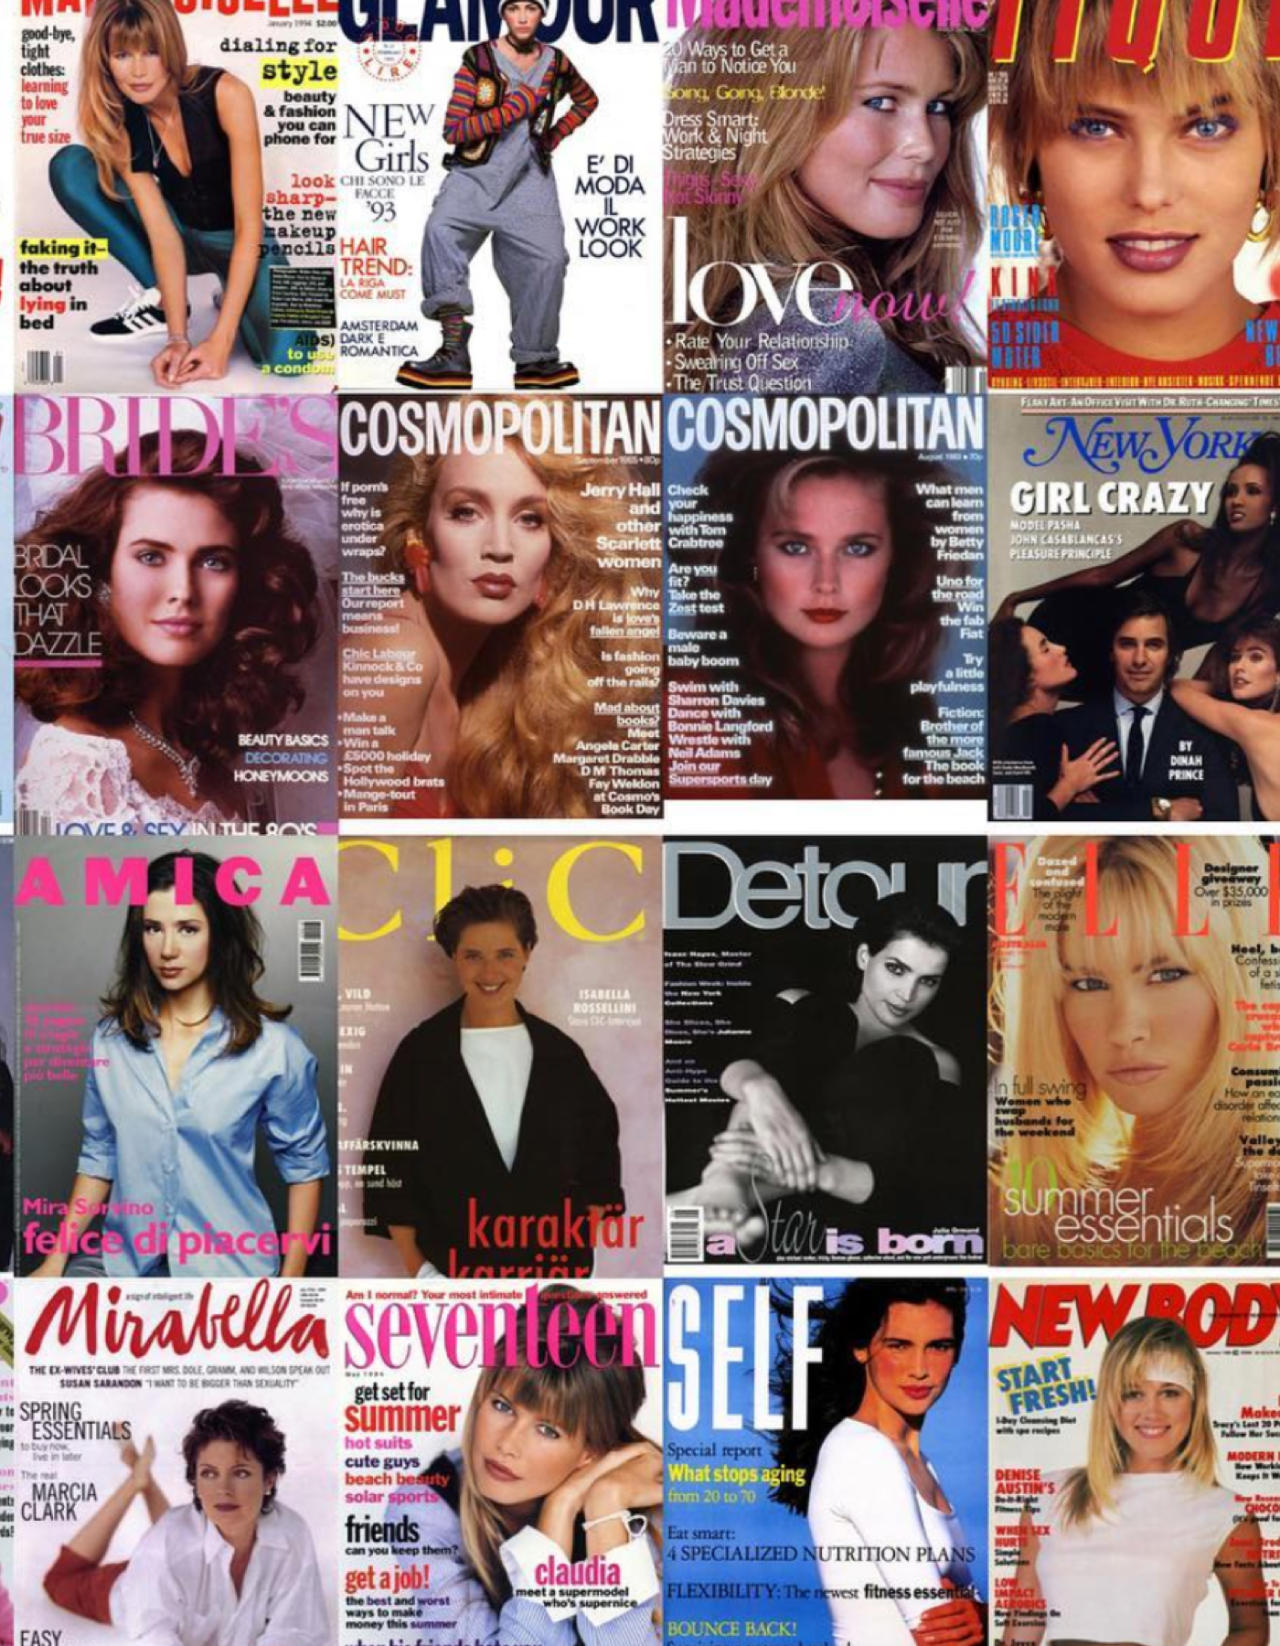 justbobbi_Archive_MagazineCovers